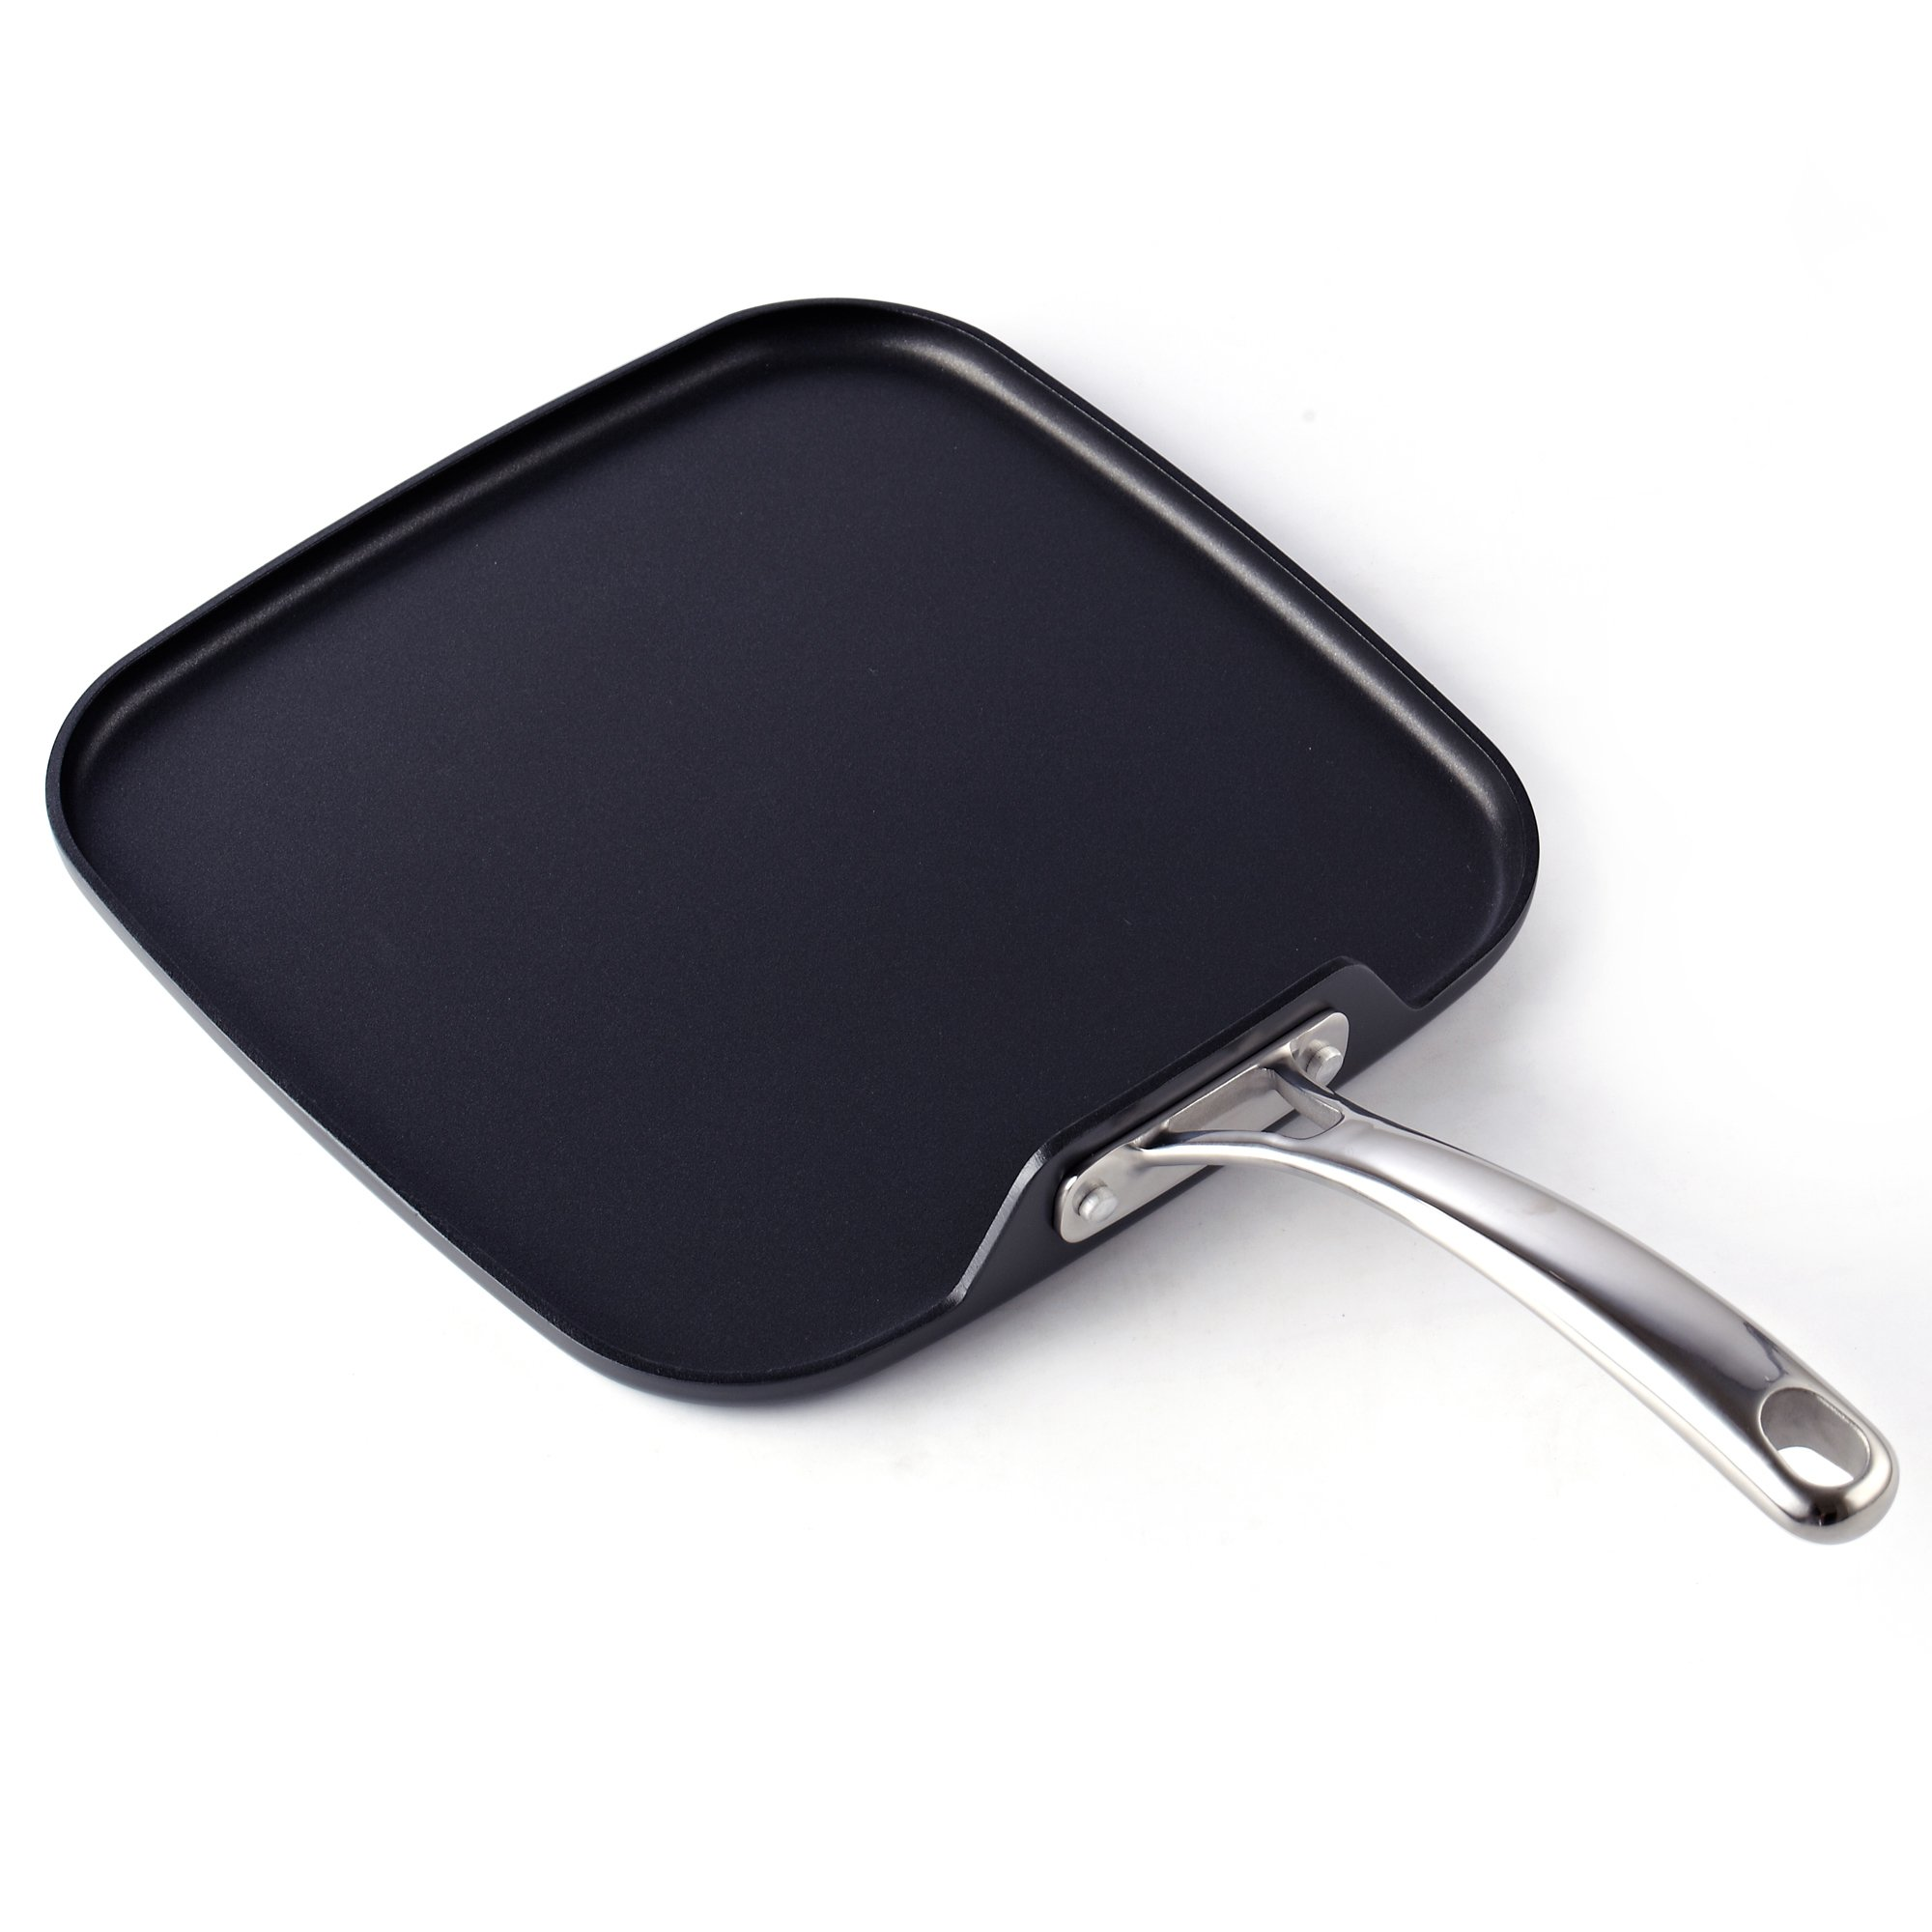 Cooks Standard Hard Anodized Nonstick Square Griddle Pan, 11 x 11-Inch, Black by Cooks Standard